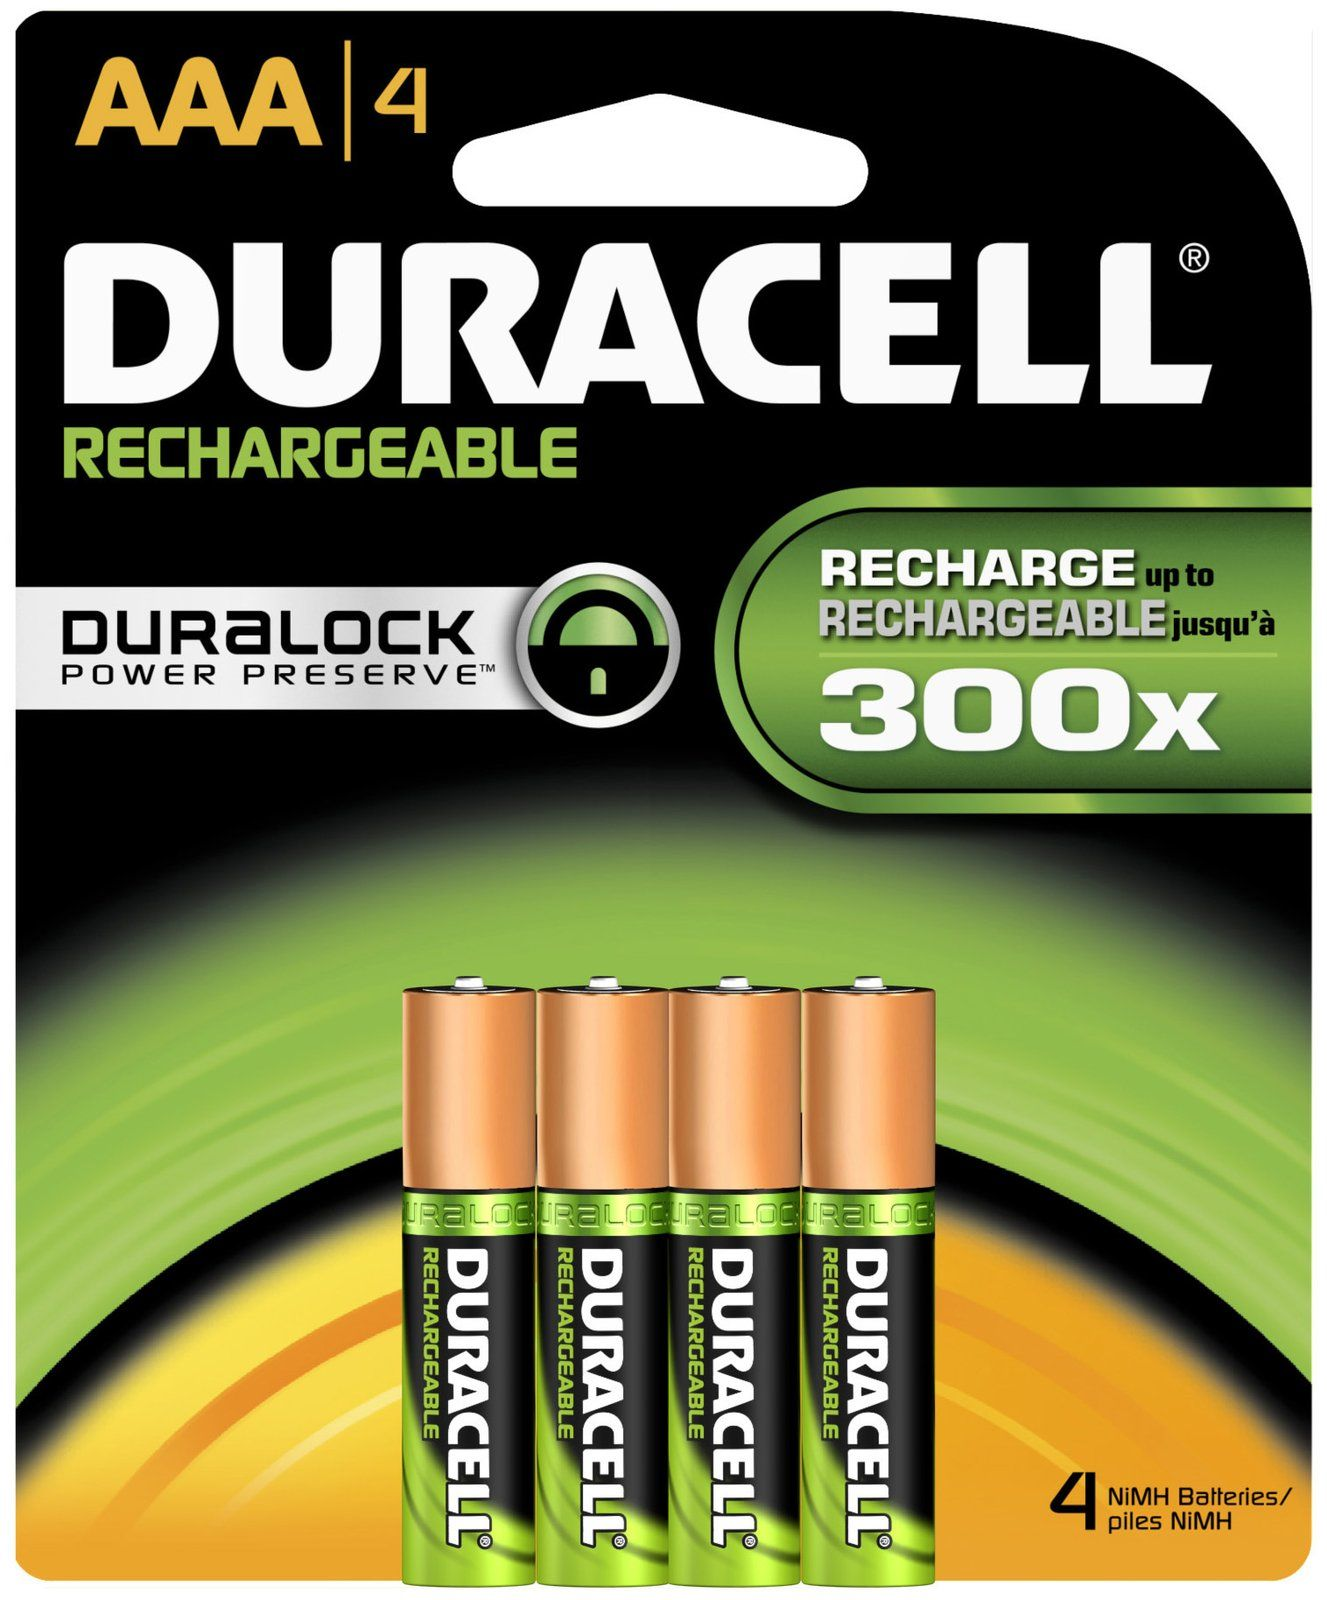 Pin By Frateschi On Best Aaa Rechargeable Batterie Reviews Rechargeable Batteries Duracell Recharge